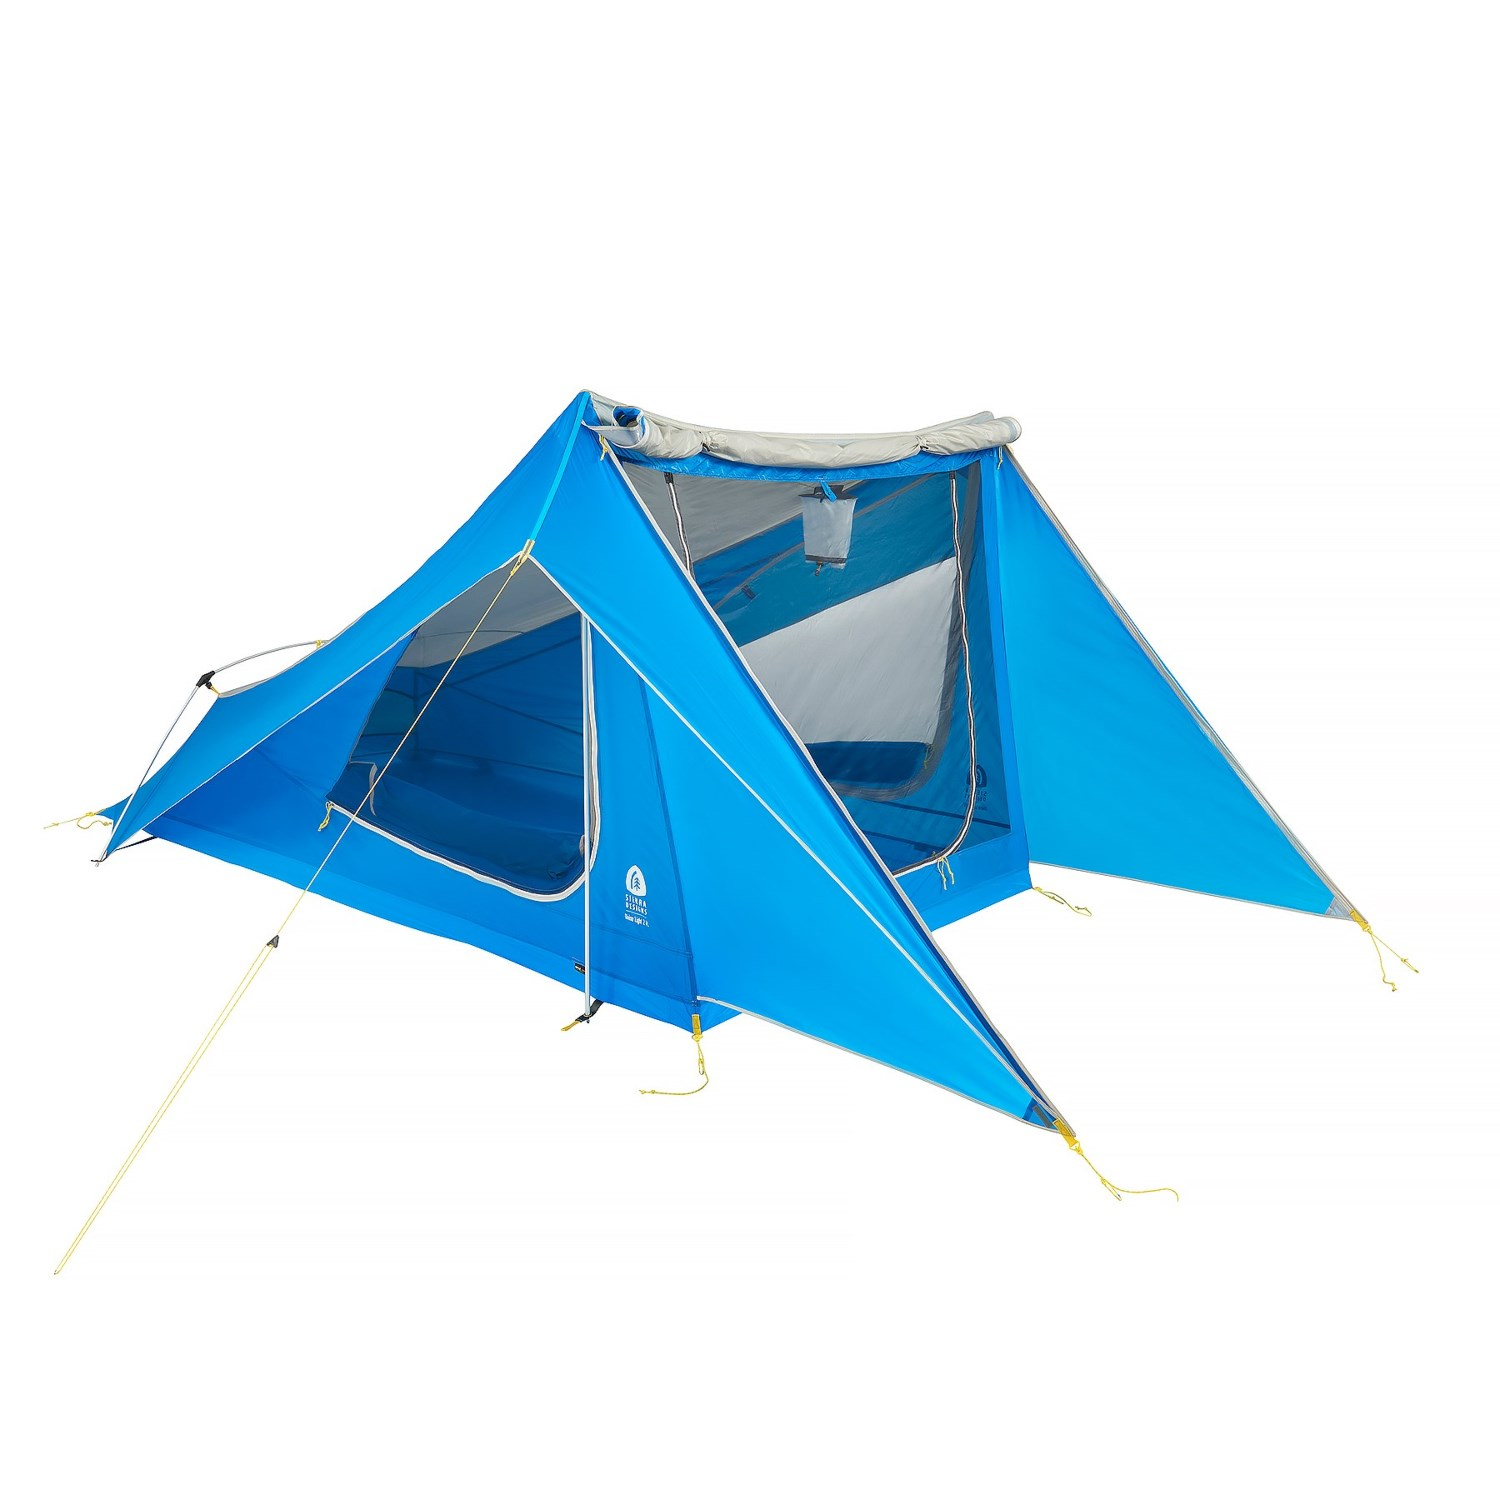 Sierra Designs Divine Light 2 FL Tent - 2-Person 3-Season  sc 1 st  Sierra Trading Post : sierra designs 2 person tent - memphite.com